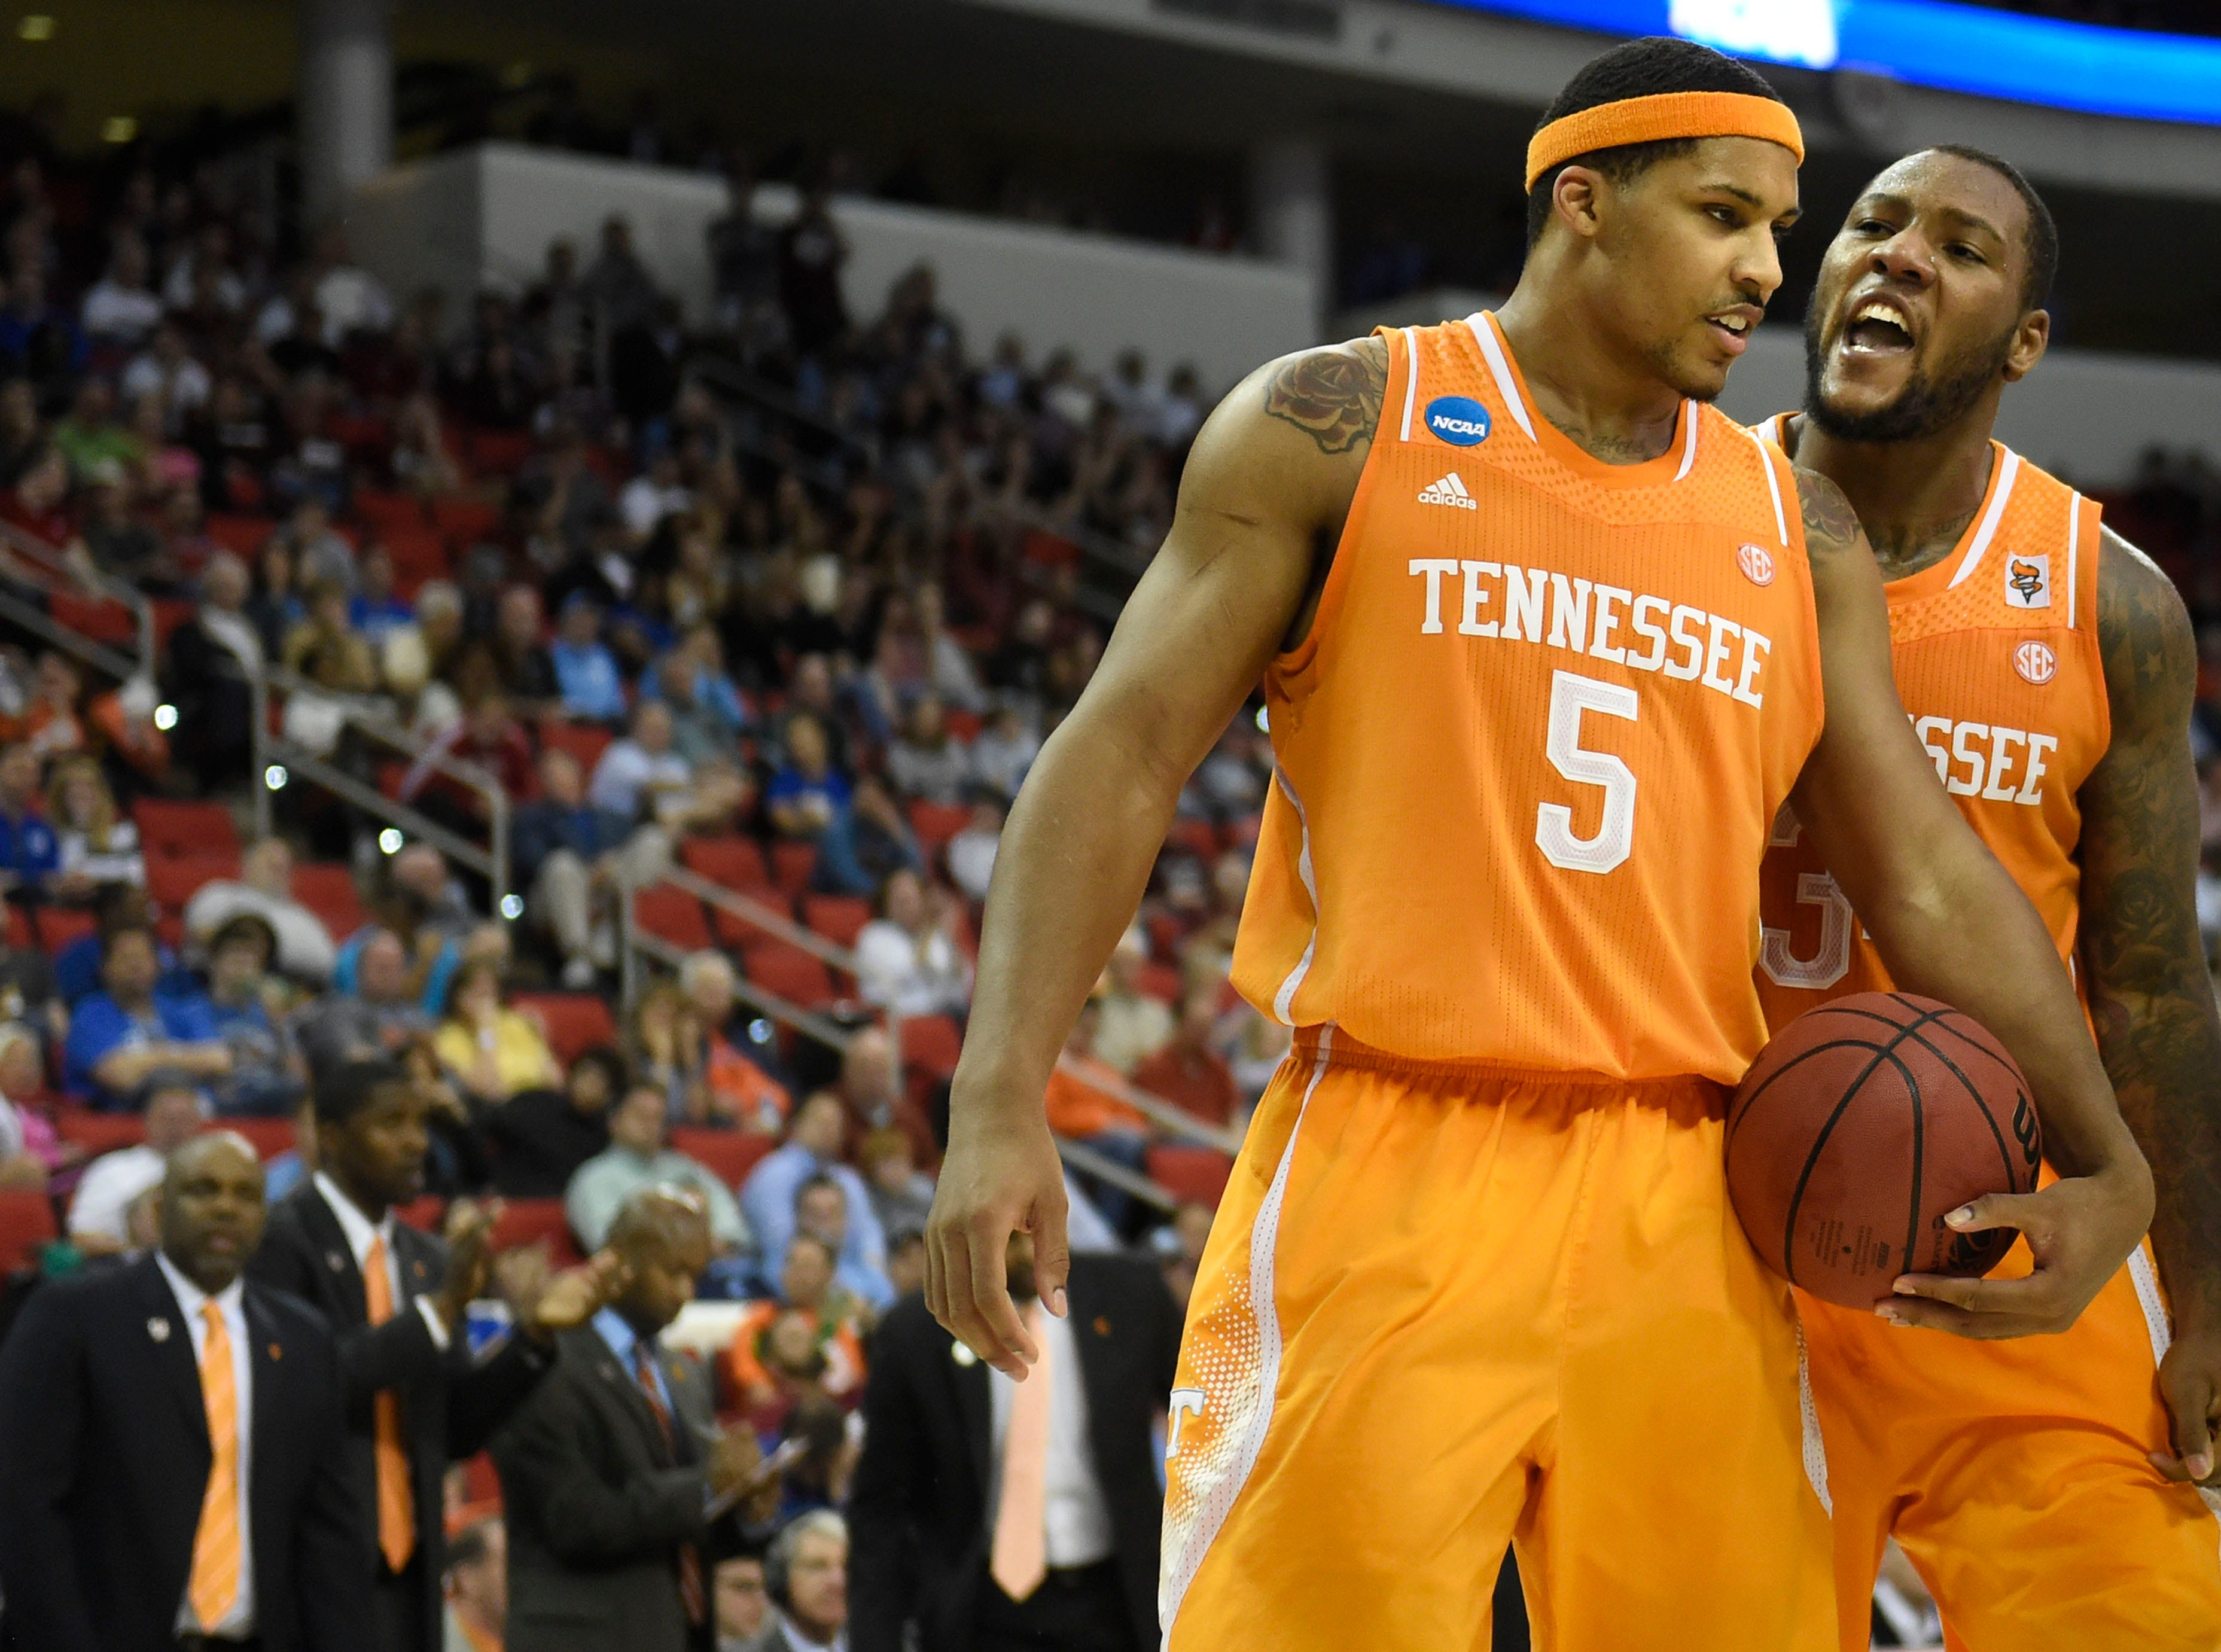 Tennessee forward Jeronne Maymon (34), right, encourages Tennessee forward Jarnell Stokes (5) after Stokes made a shot against Massachusetts during the second half of an NCAA tournament game at the PNC Arena in Raleigh, N.C. on Friday, March 21, 2014. Tennessee won 86-67.